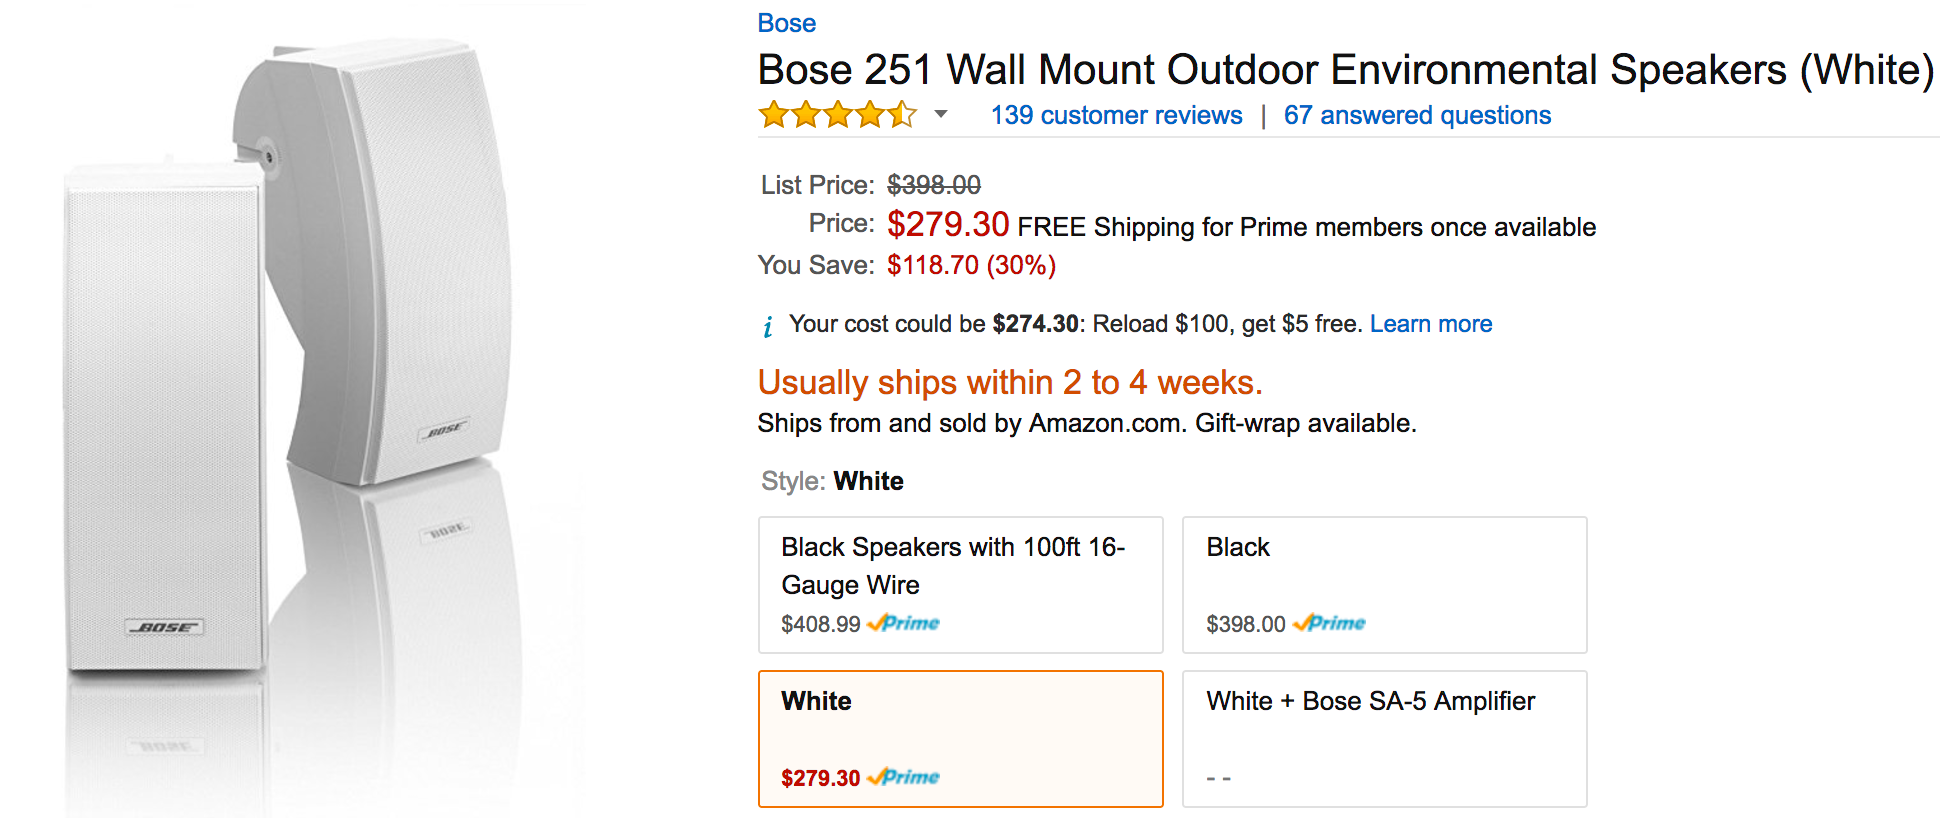 Bose Wall Mount Outdoor Environmental Speakers For 280